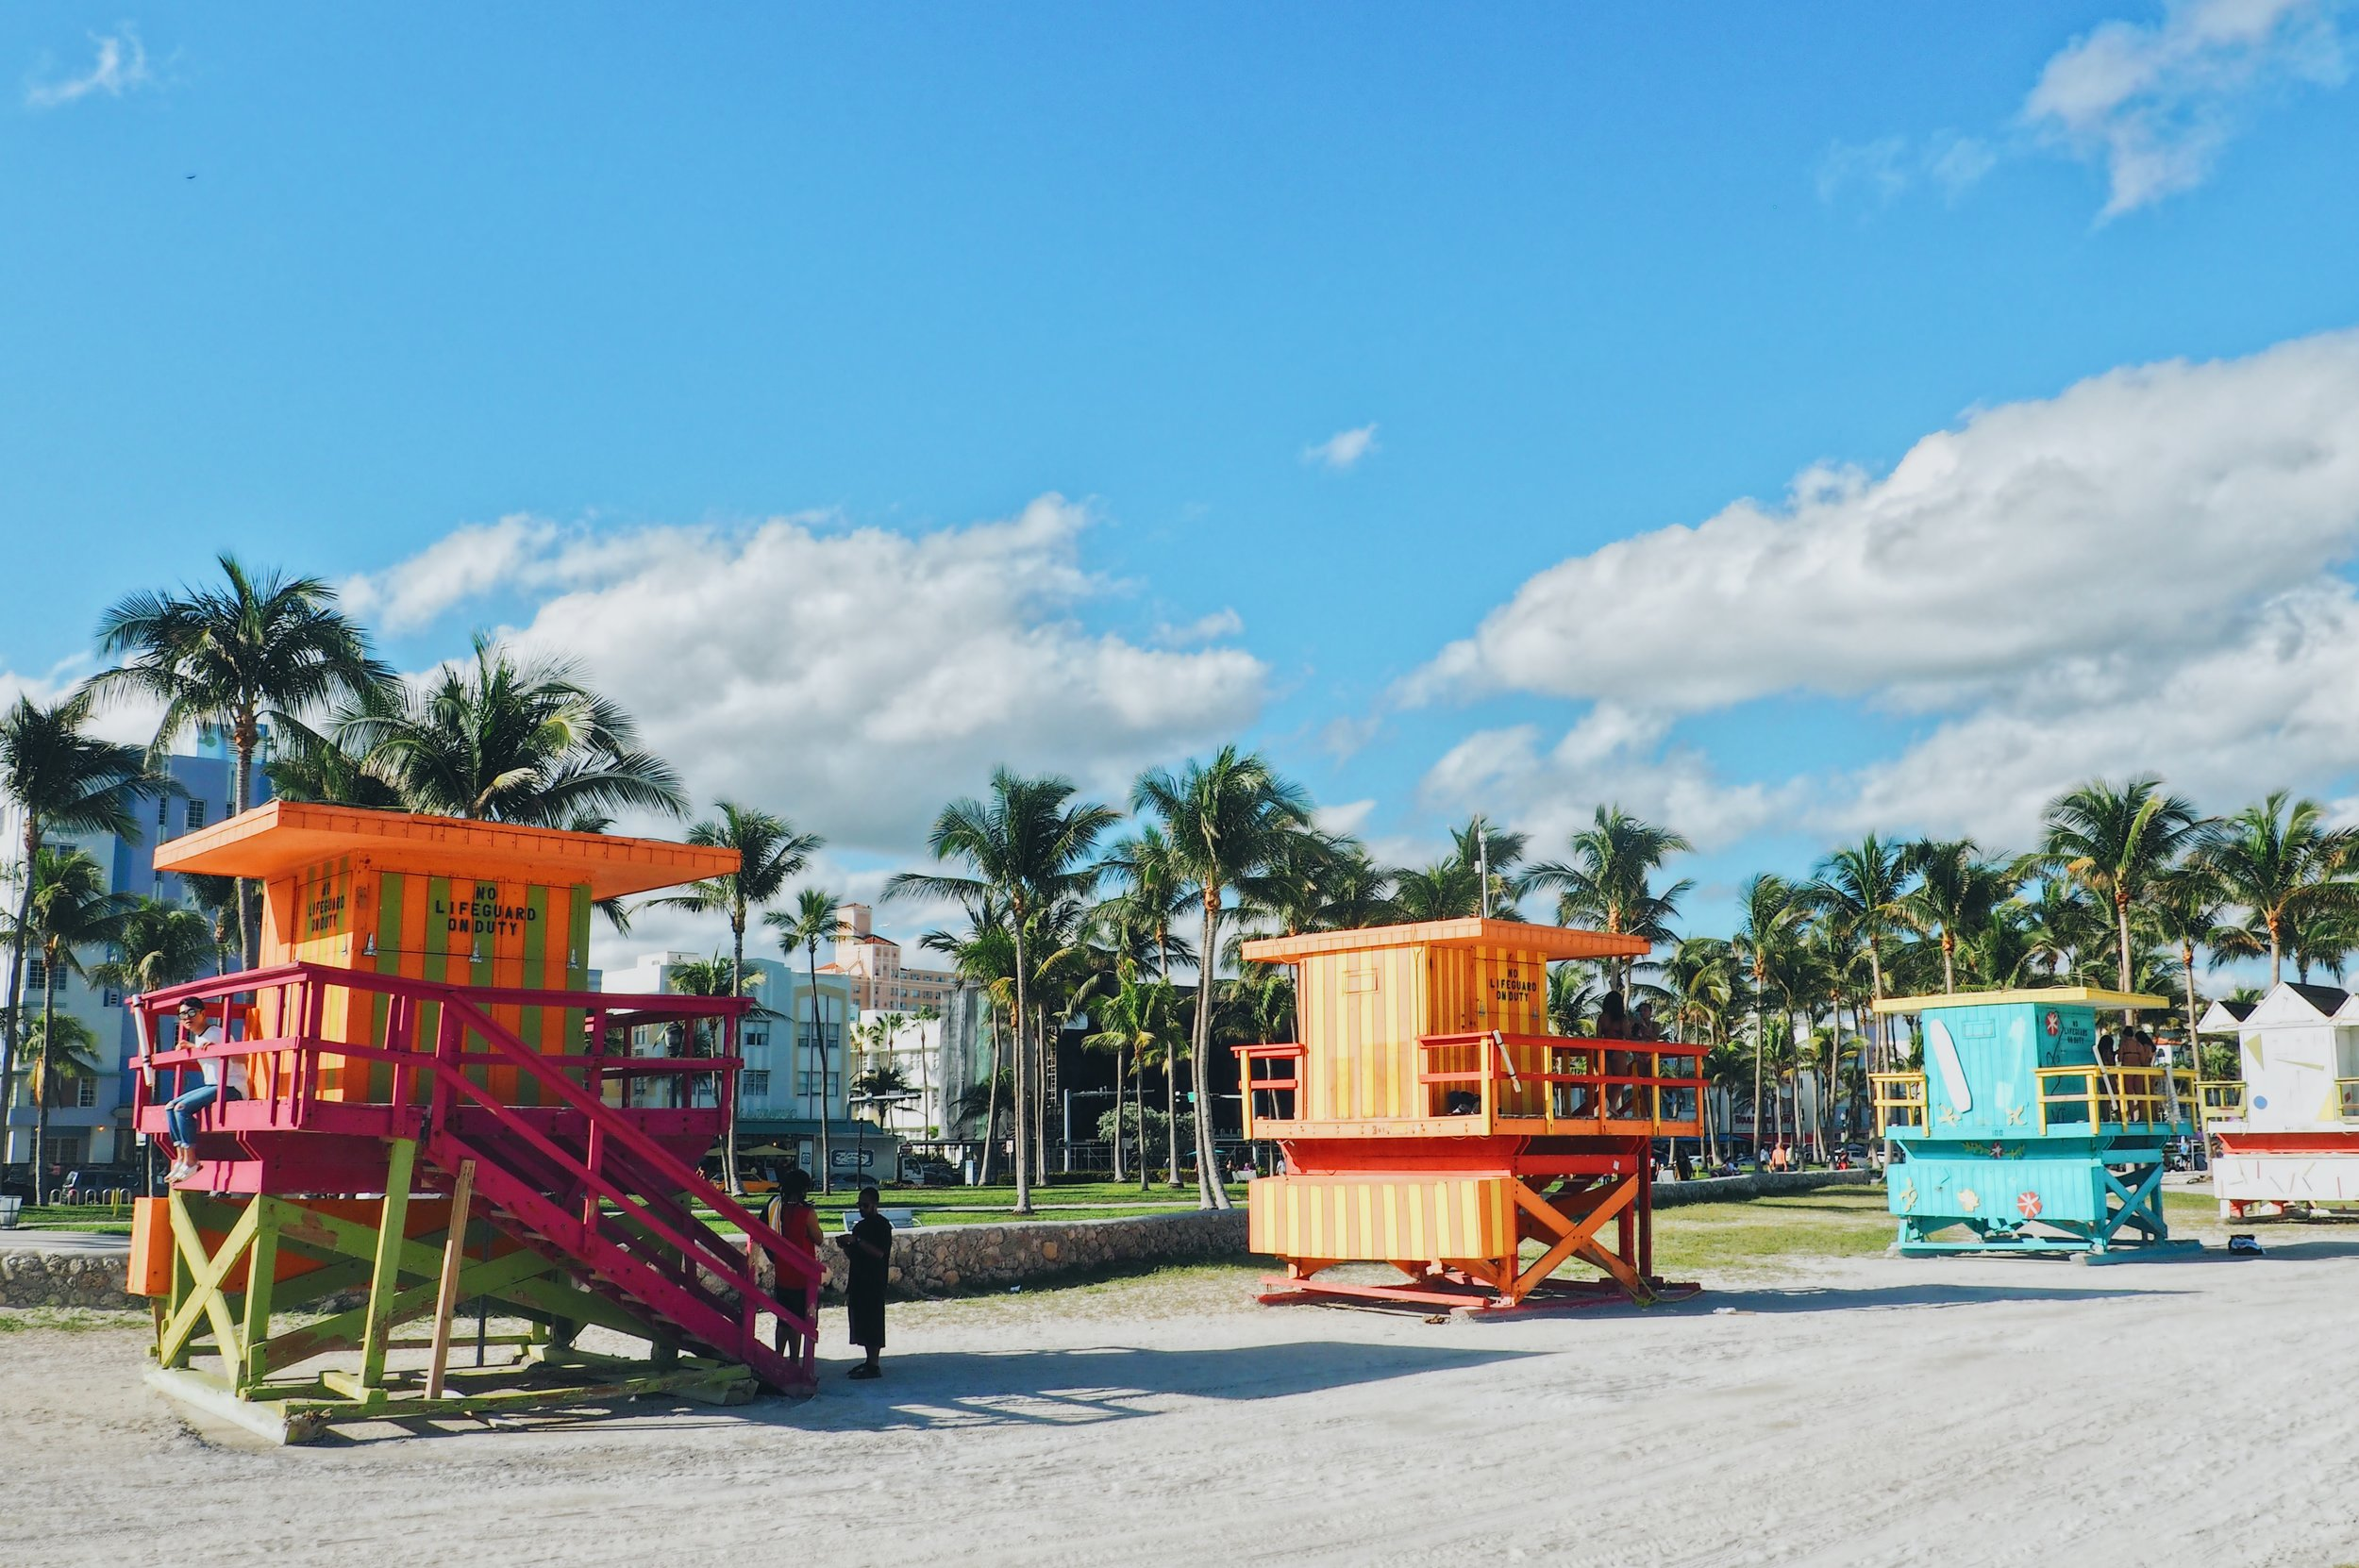 south beach miami florida lifeguard posts.jpg